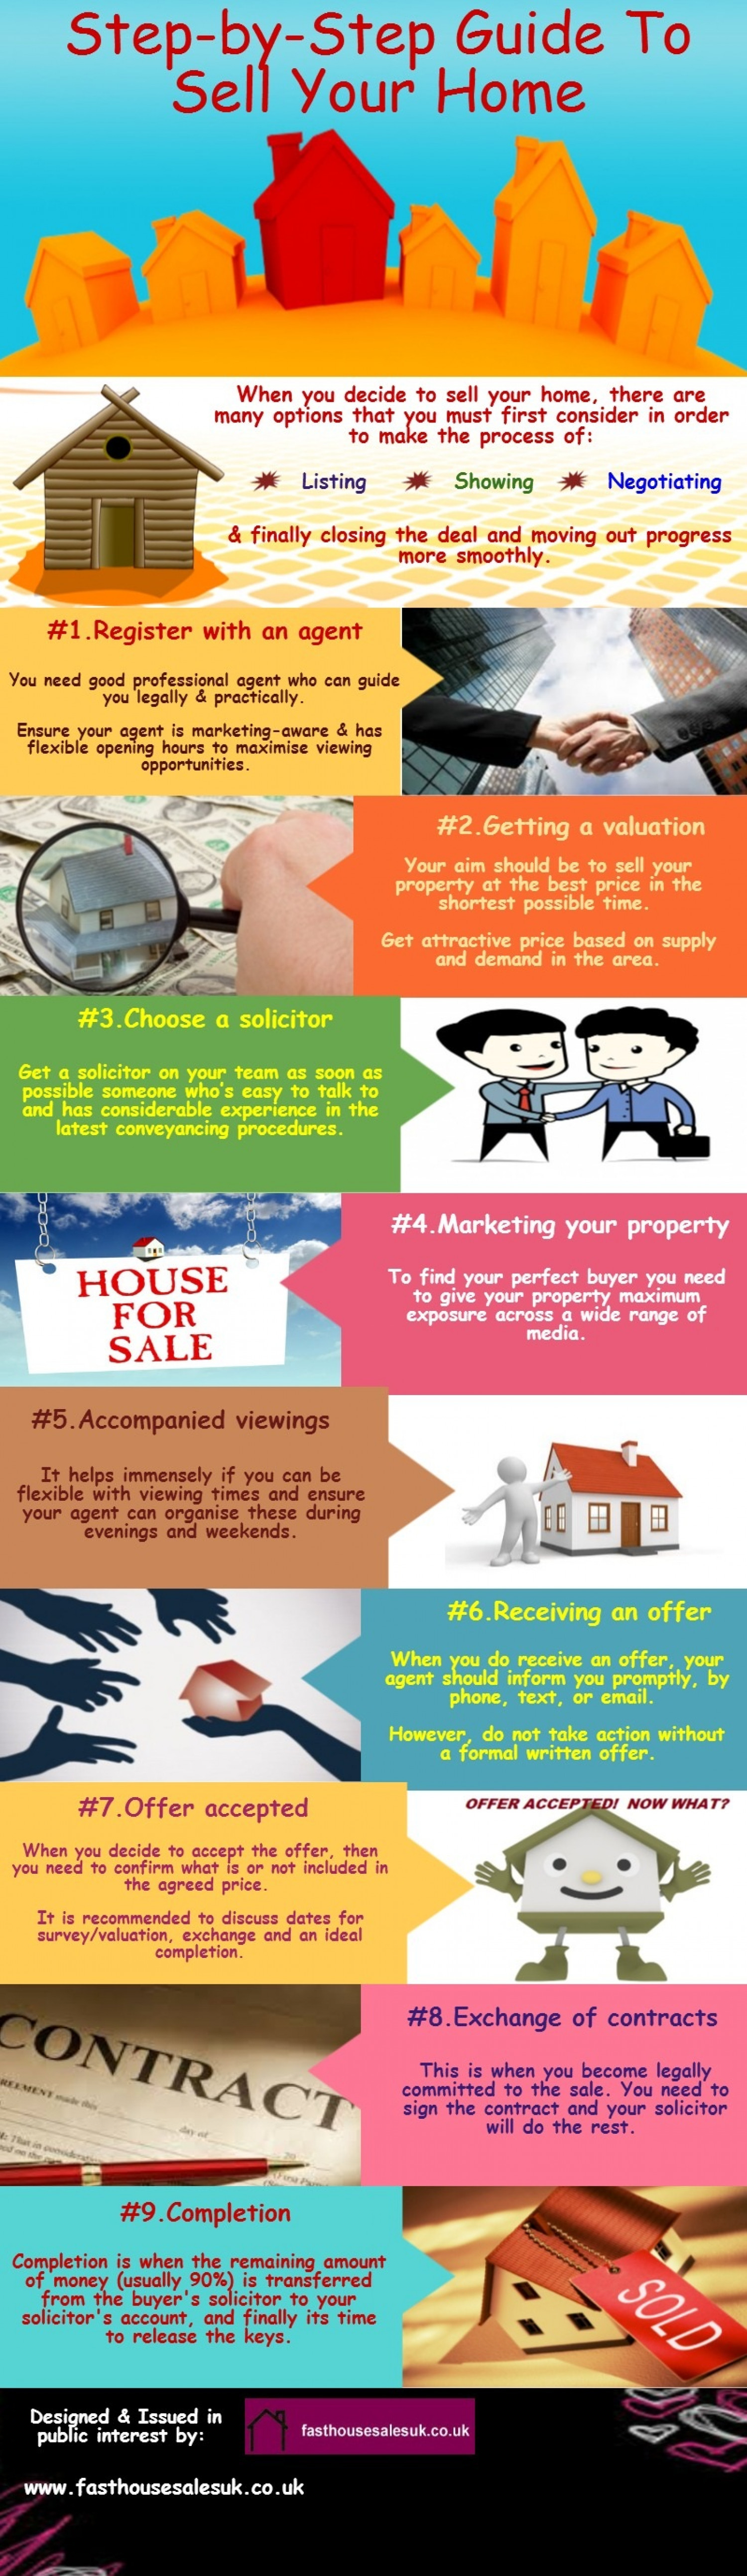 Step-by-Step Guide To Sell Your Home Infographic